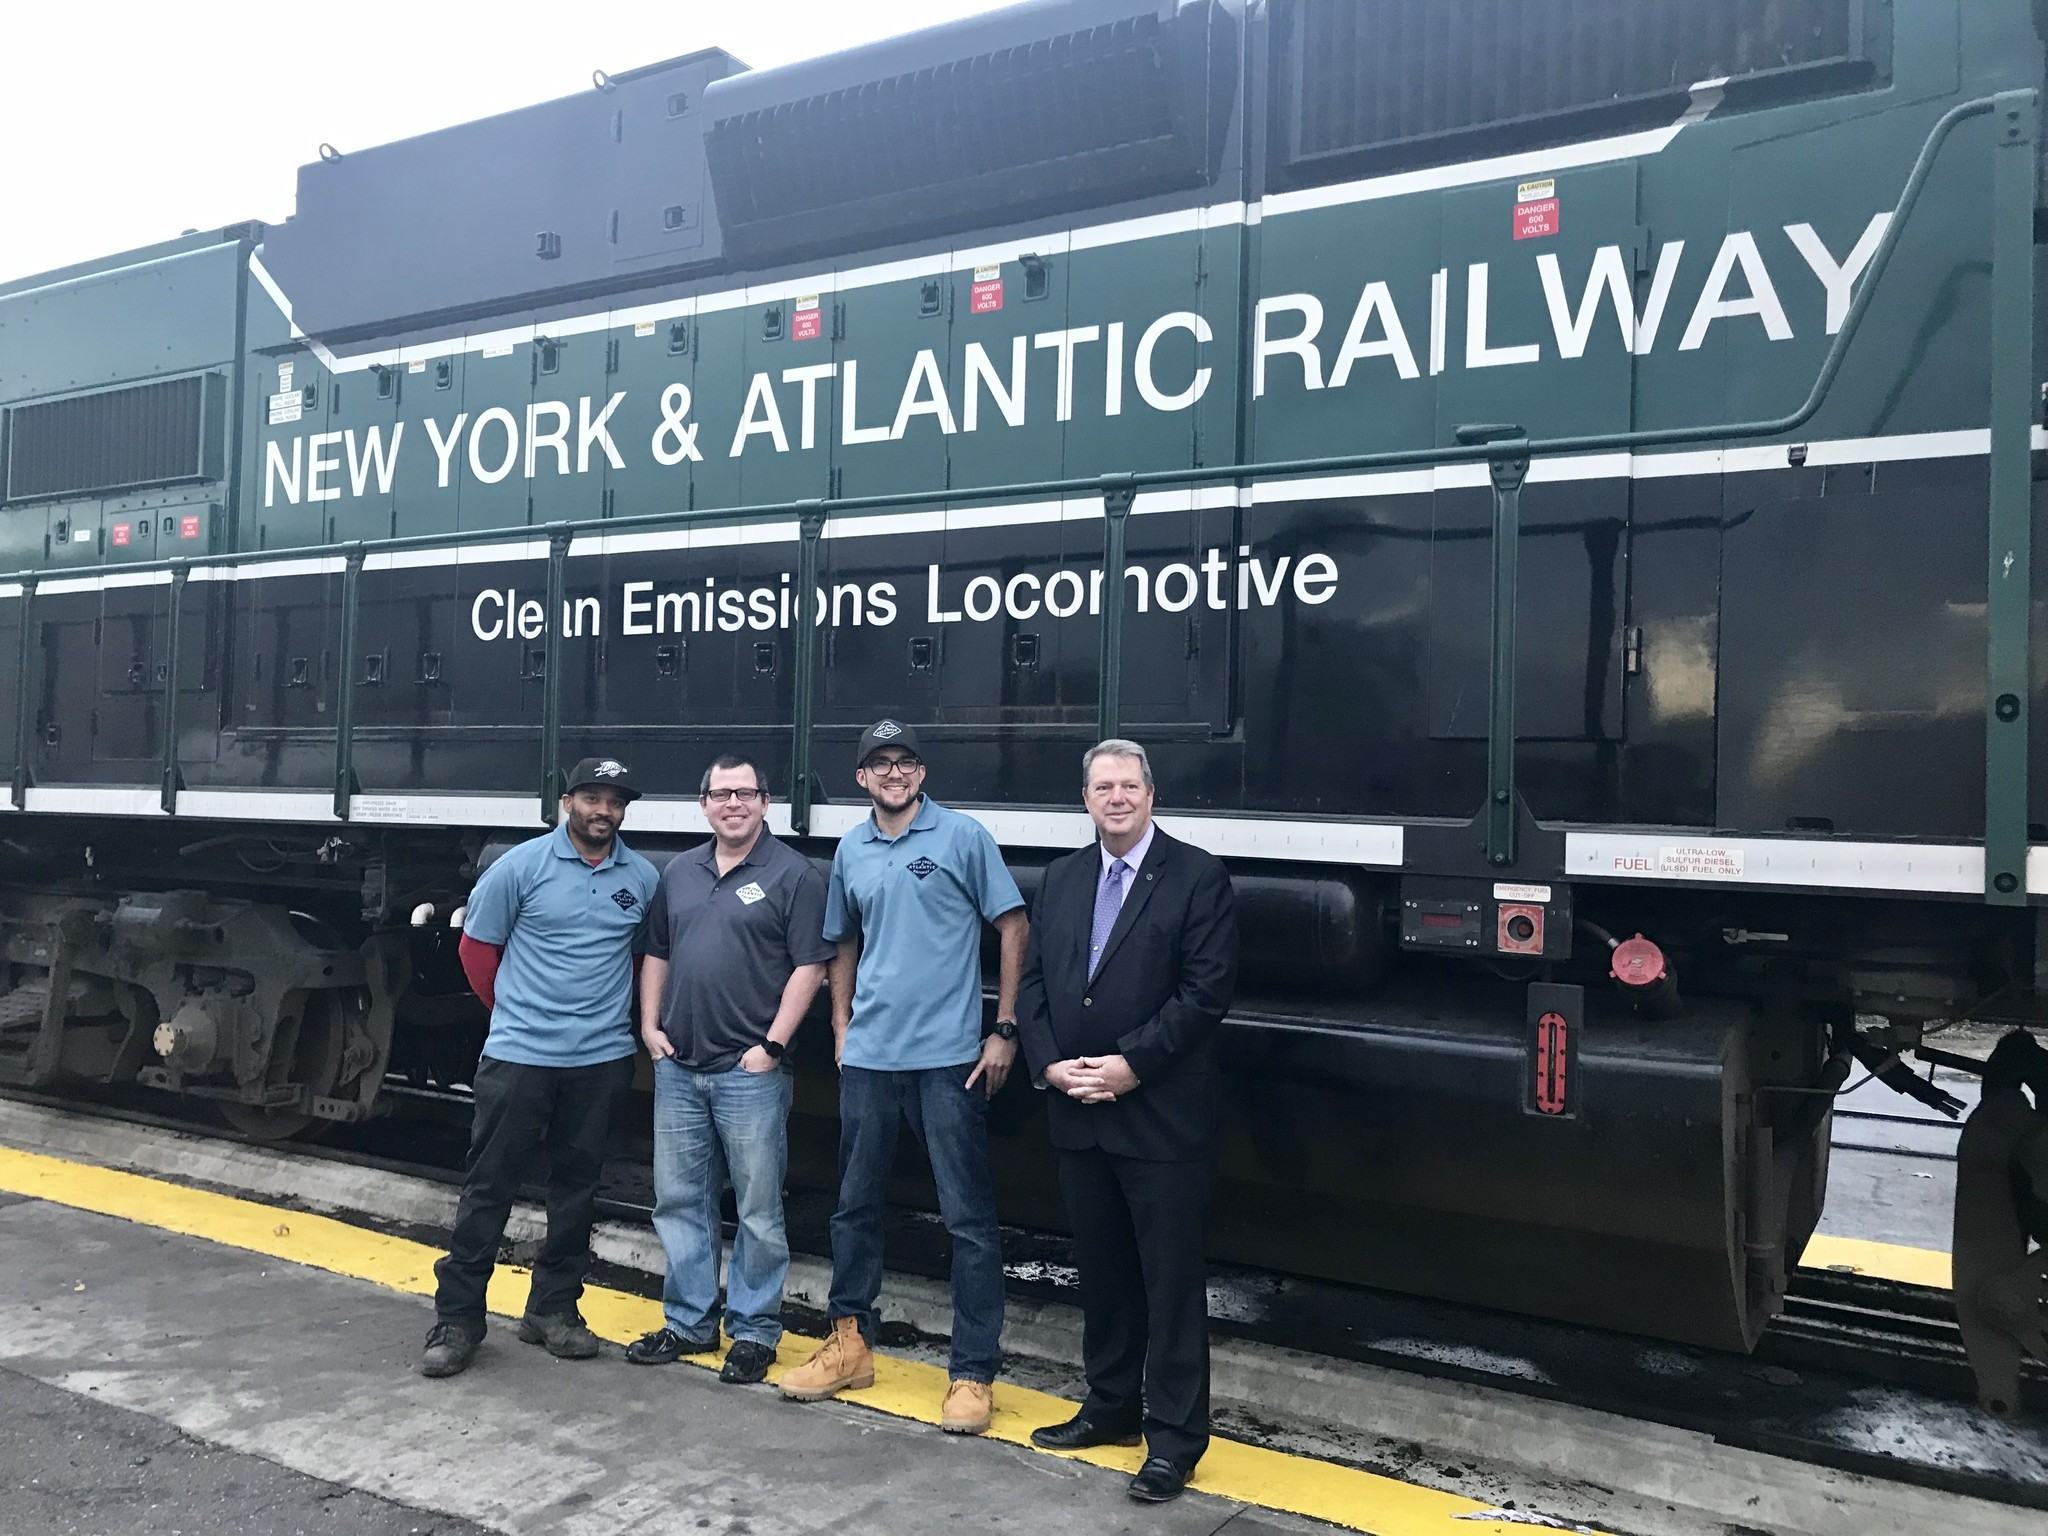 Freight train staffers honored for rescuing disoriented elderly woman from tracks | New York Daily News